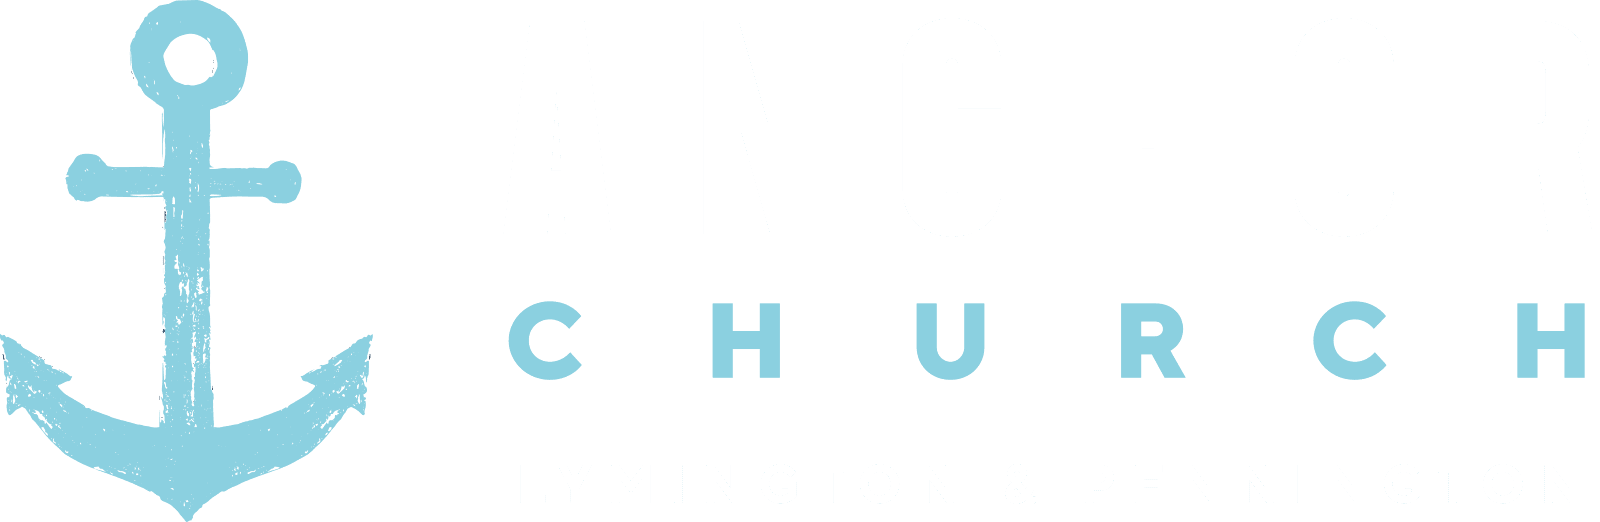 Anchor Church, Lymington & Pennington